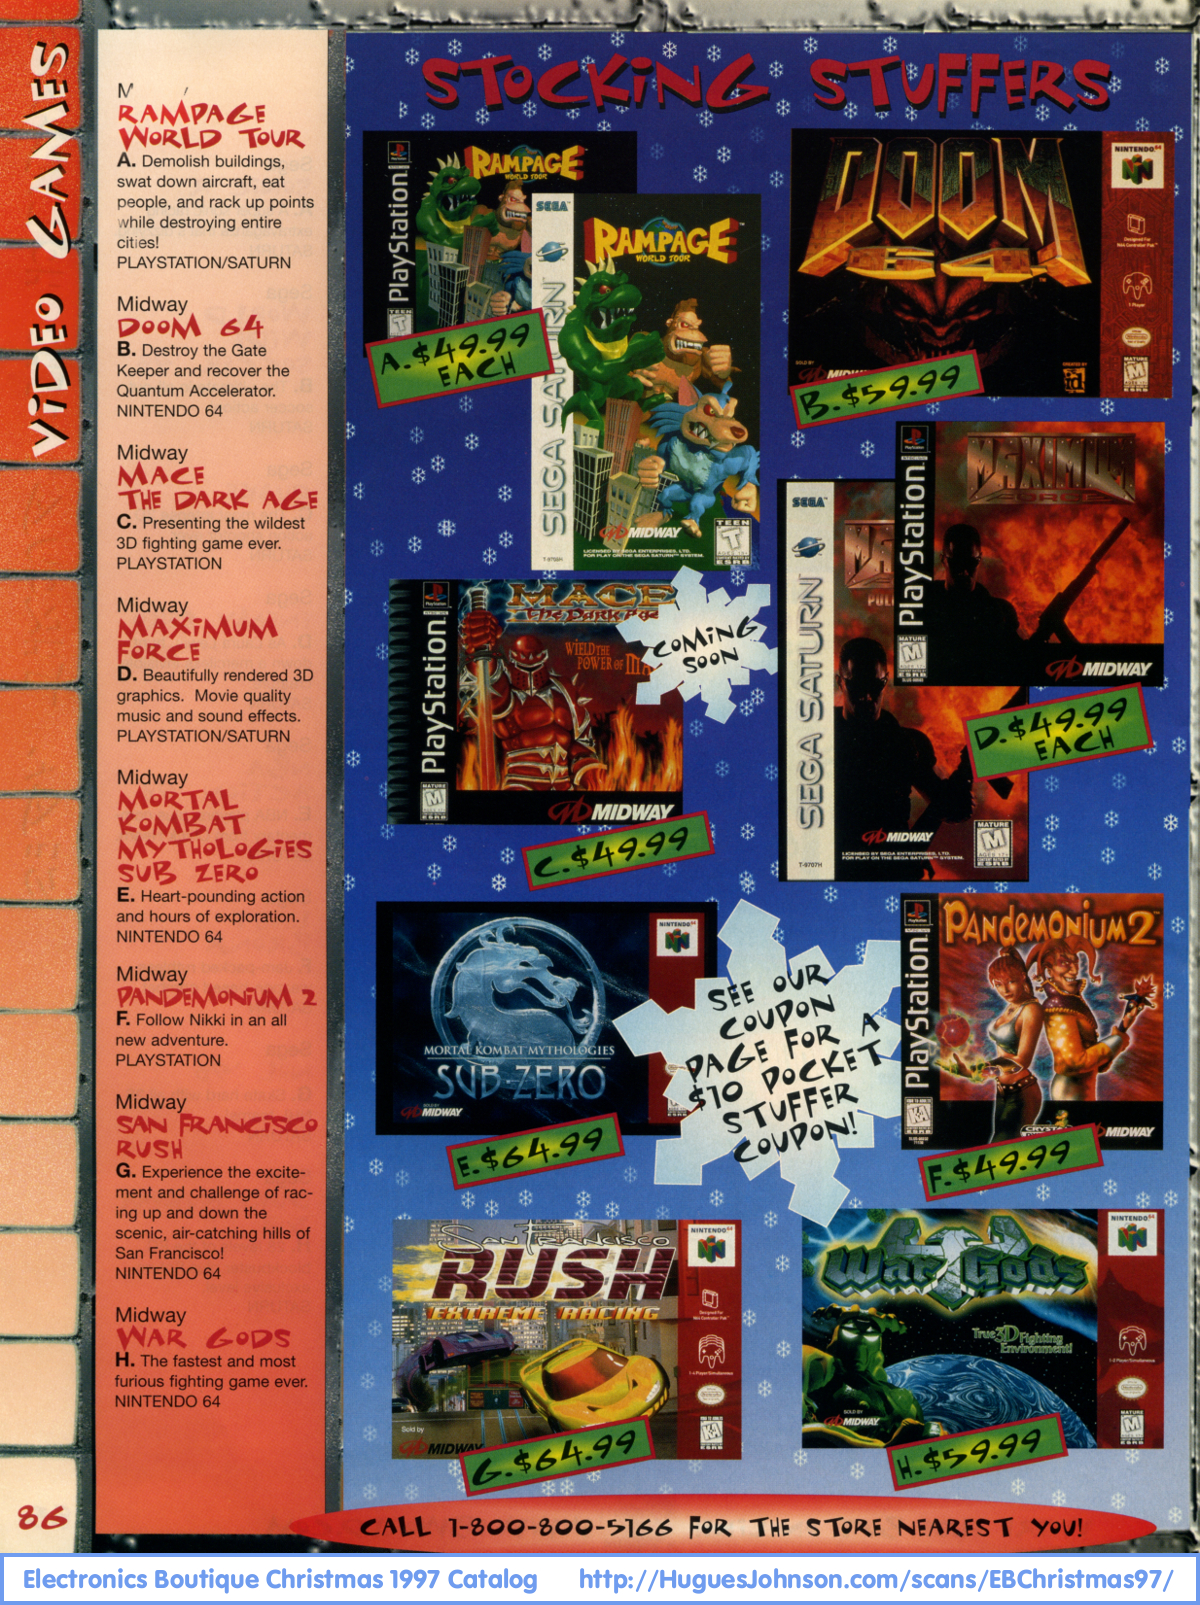 Page 86 - Rampage World Tour, Doom 64, Mace the Dark Age, Maximum